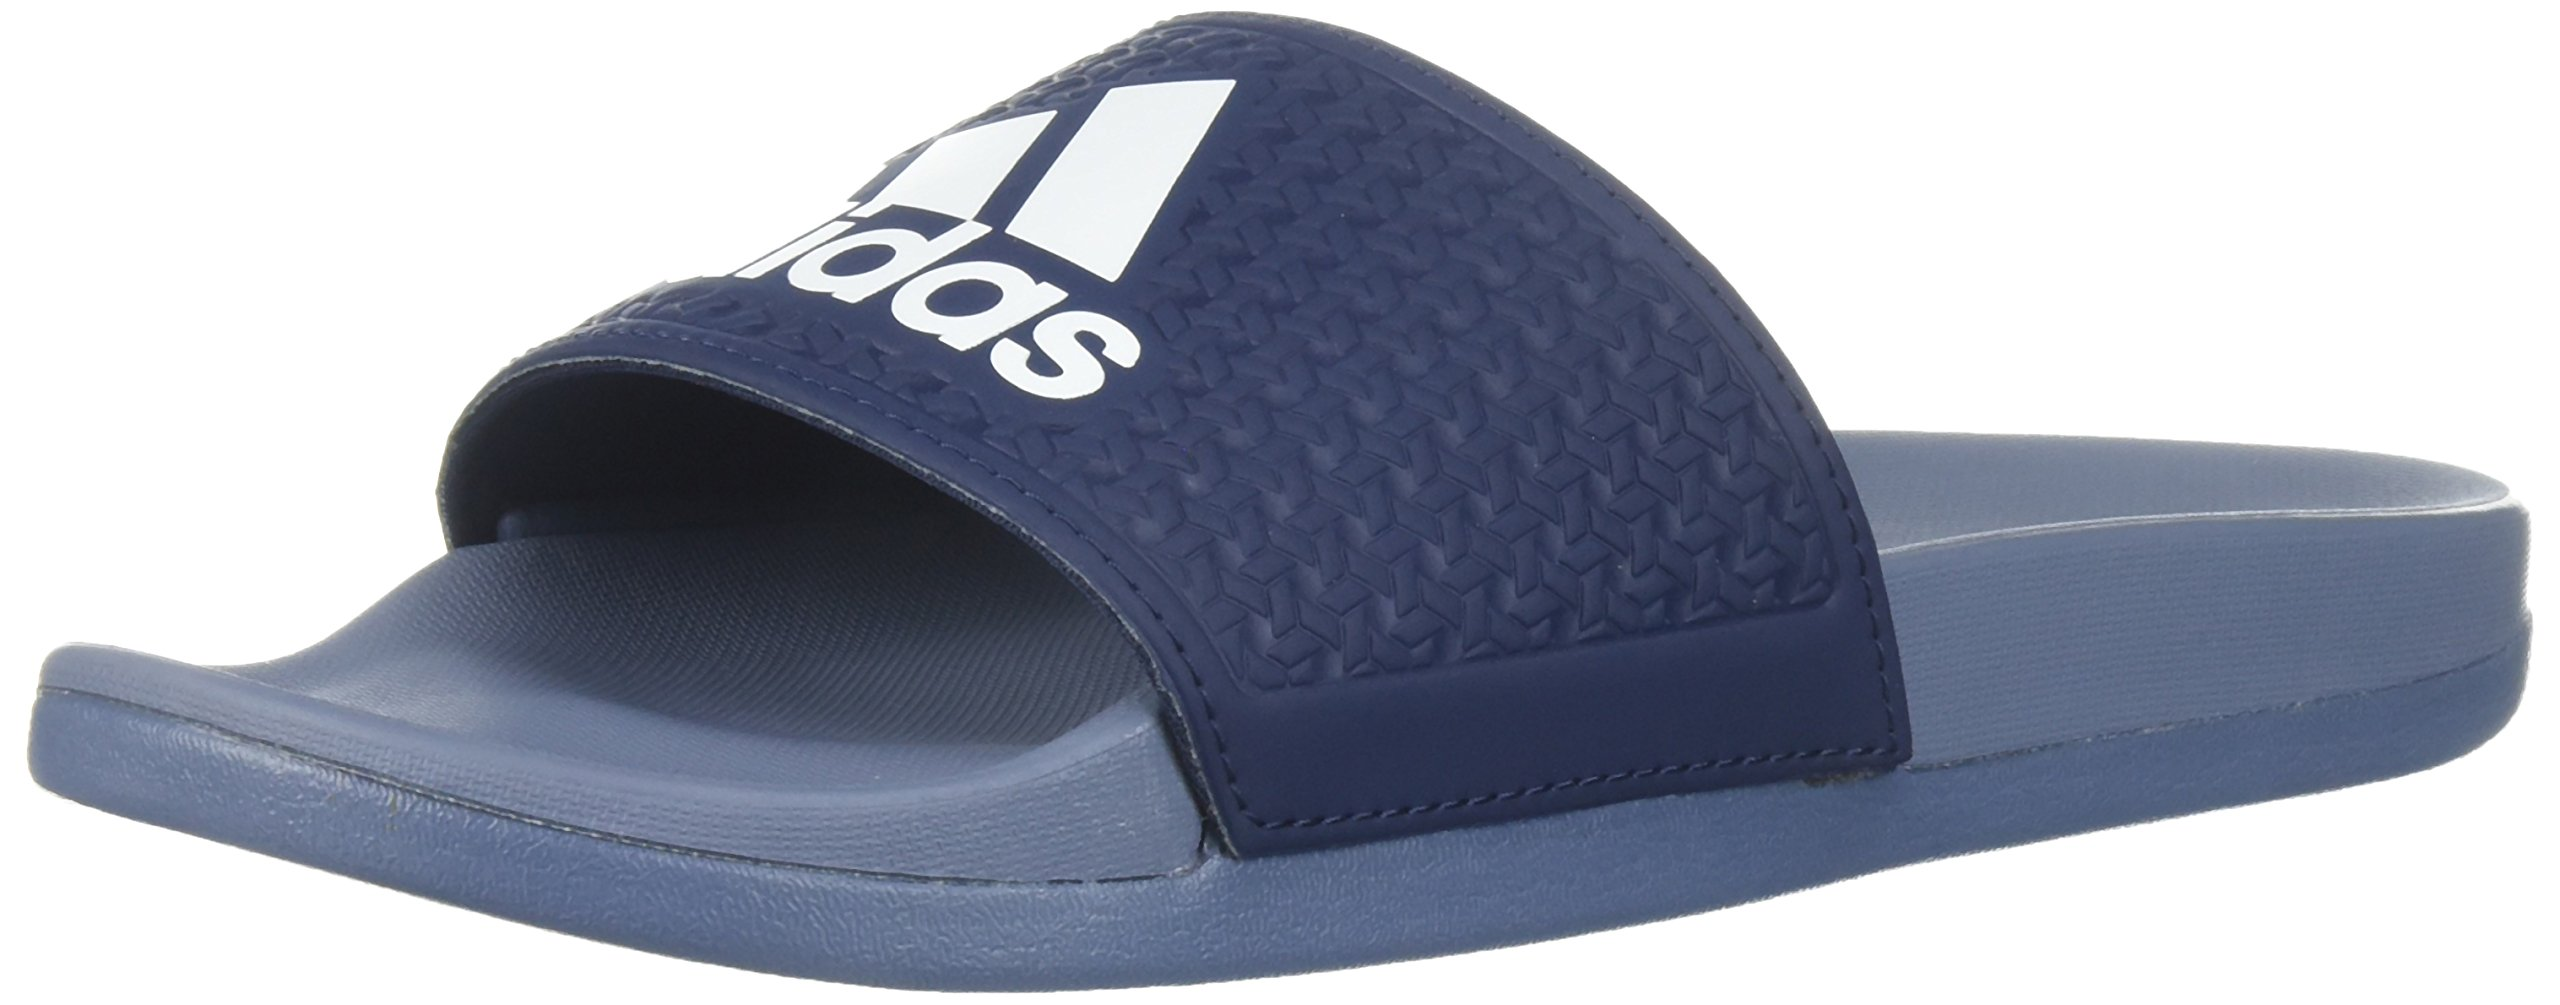 reputable site aaa94 ac55d Get Quotations · adidas Kids Adilette CLF+ K